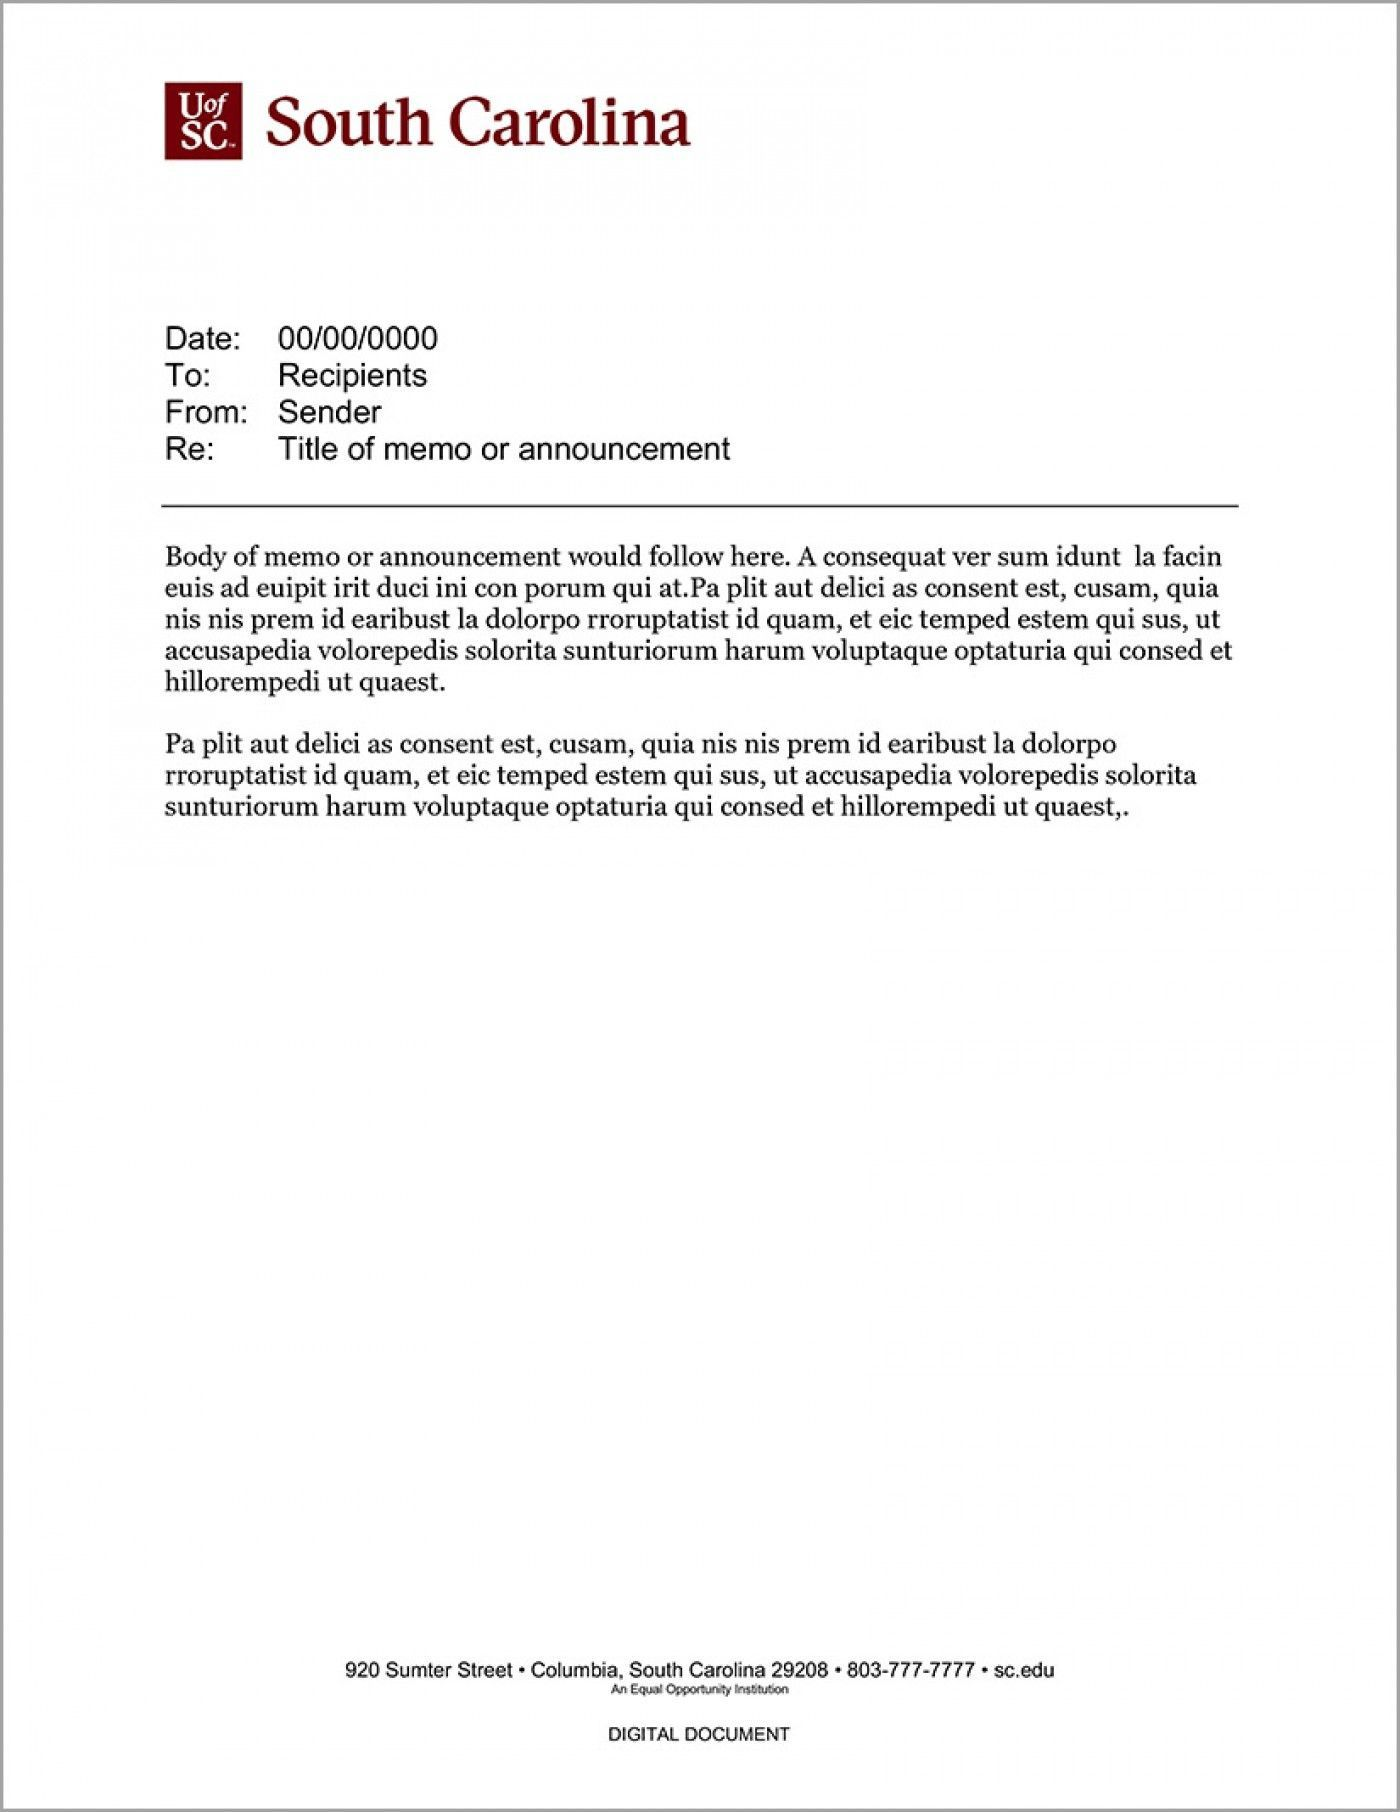 004 Fascinating Memo Template For Word High Definition  Free Cash Sample 2013Full